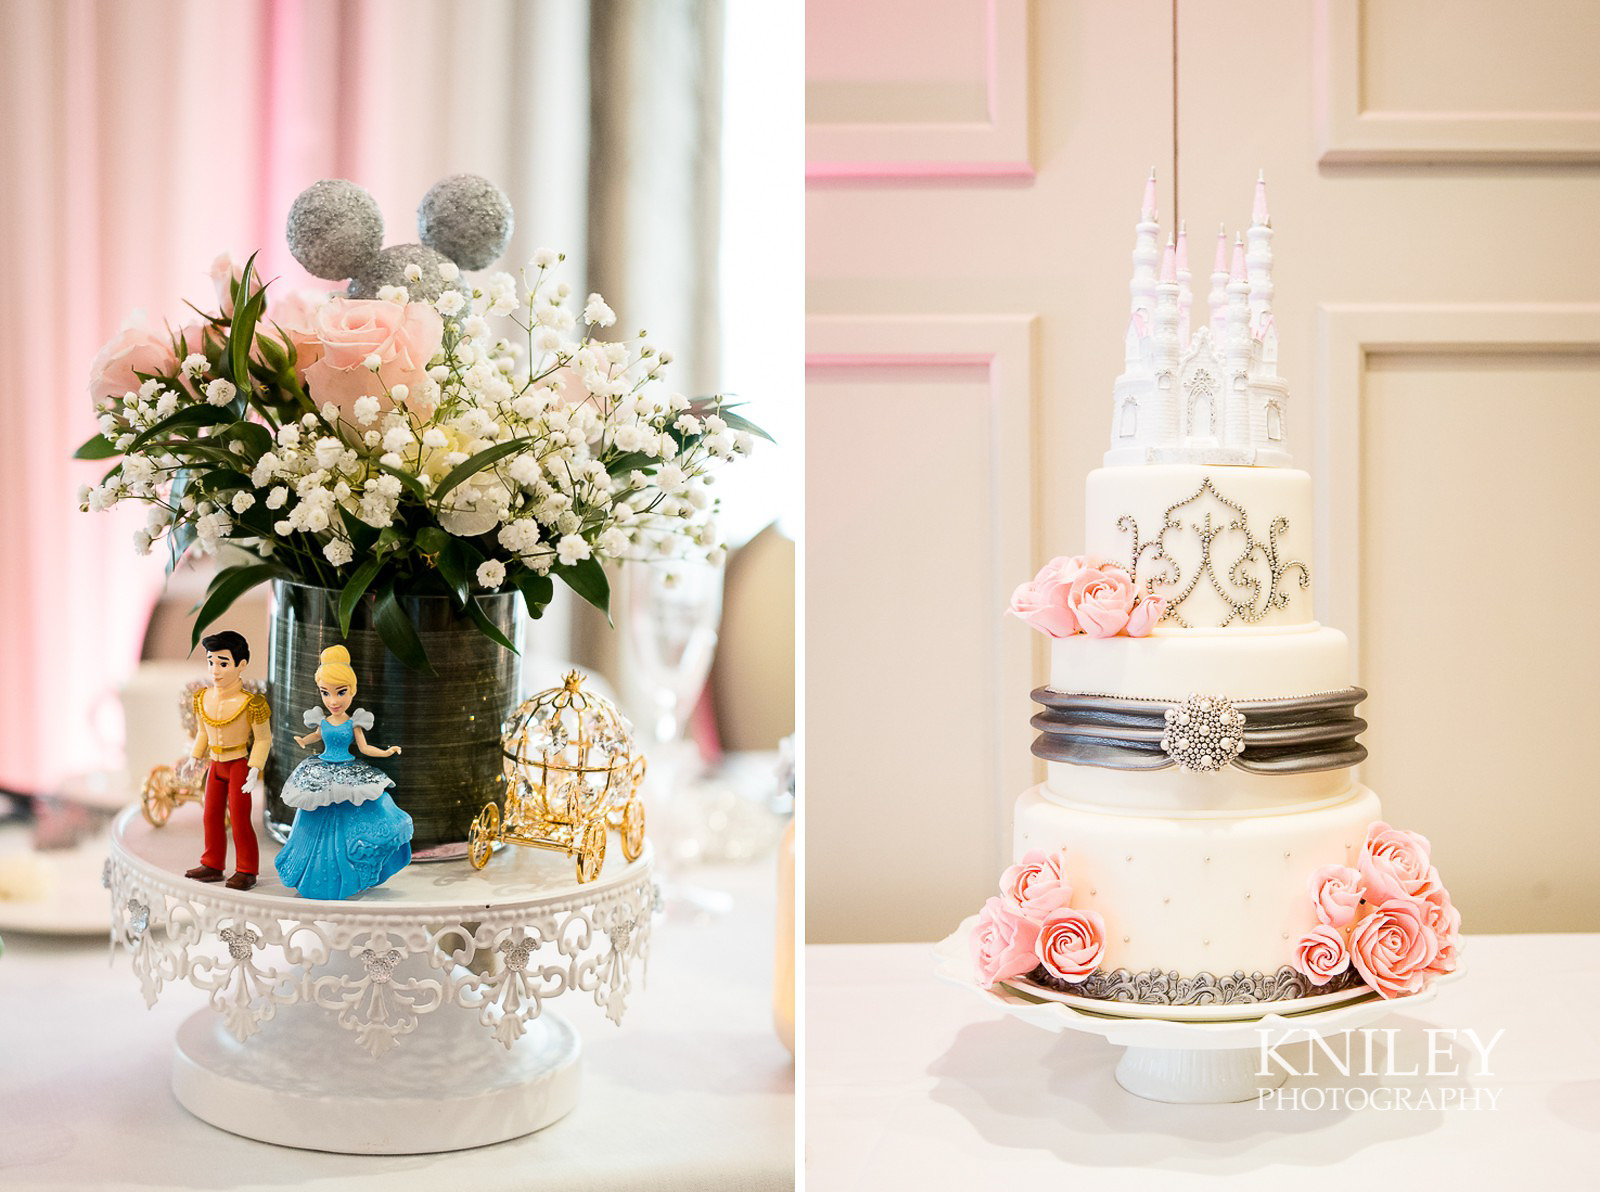 073 - Woodcliff Hotel - Rochester NY wedding photo - Kniley Photography.jpg